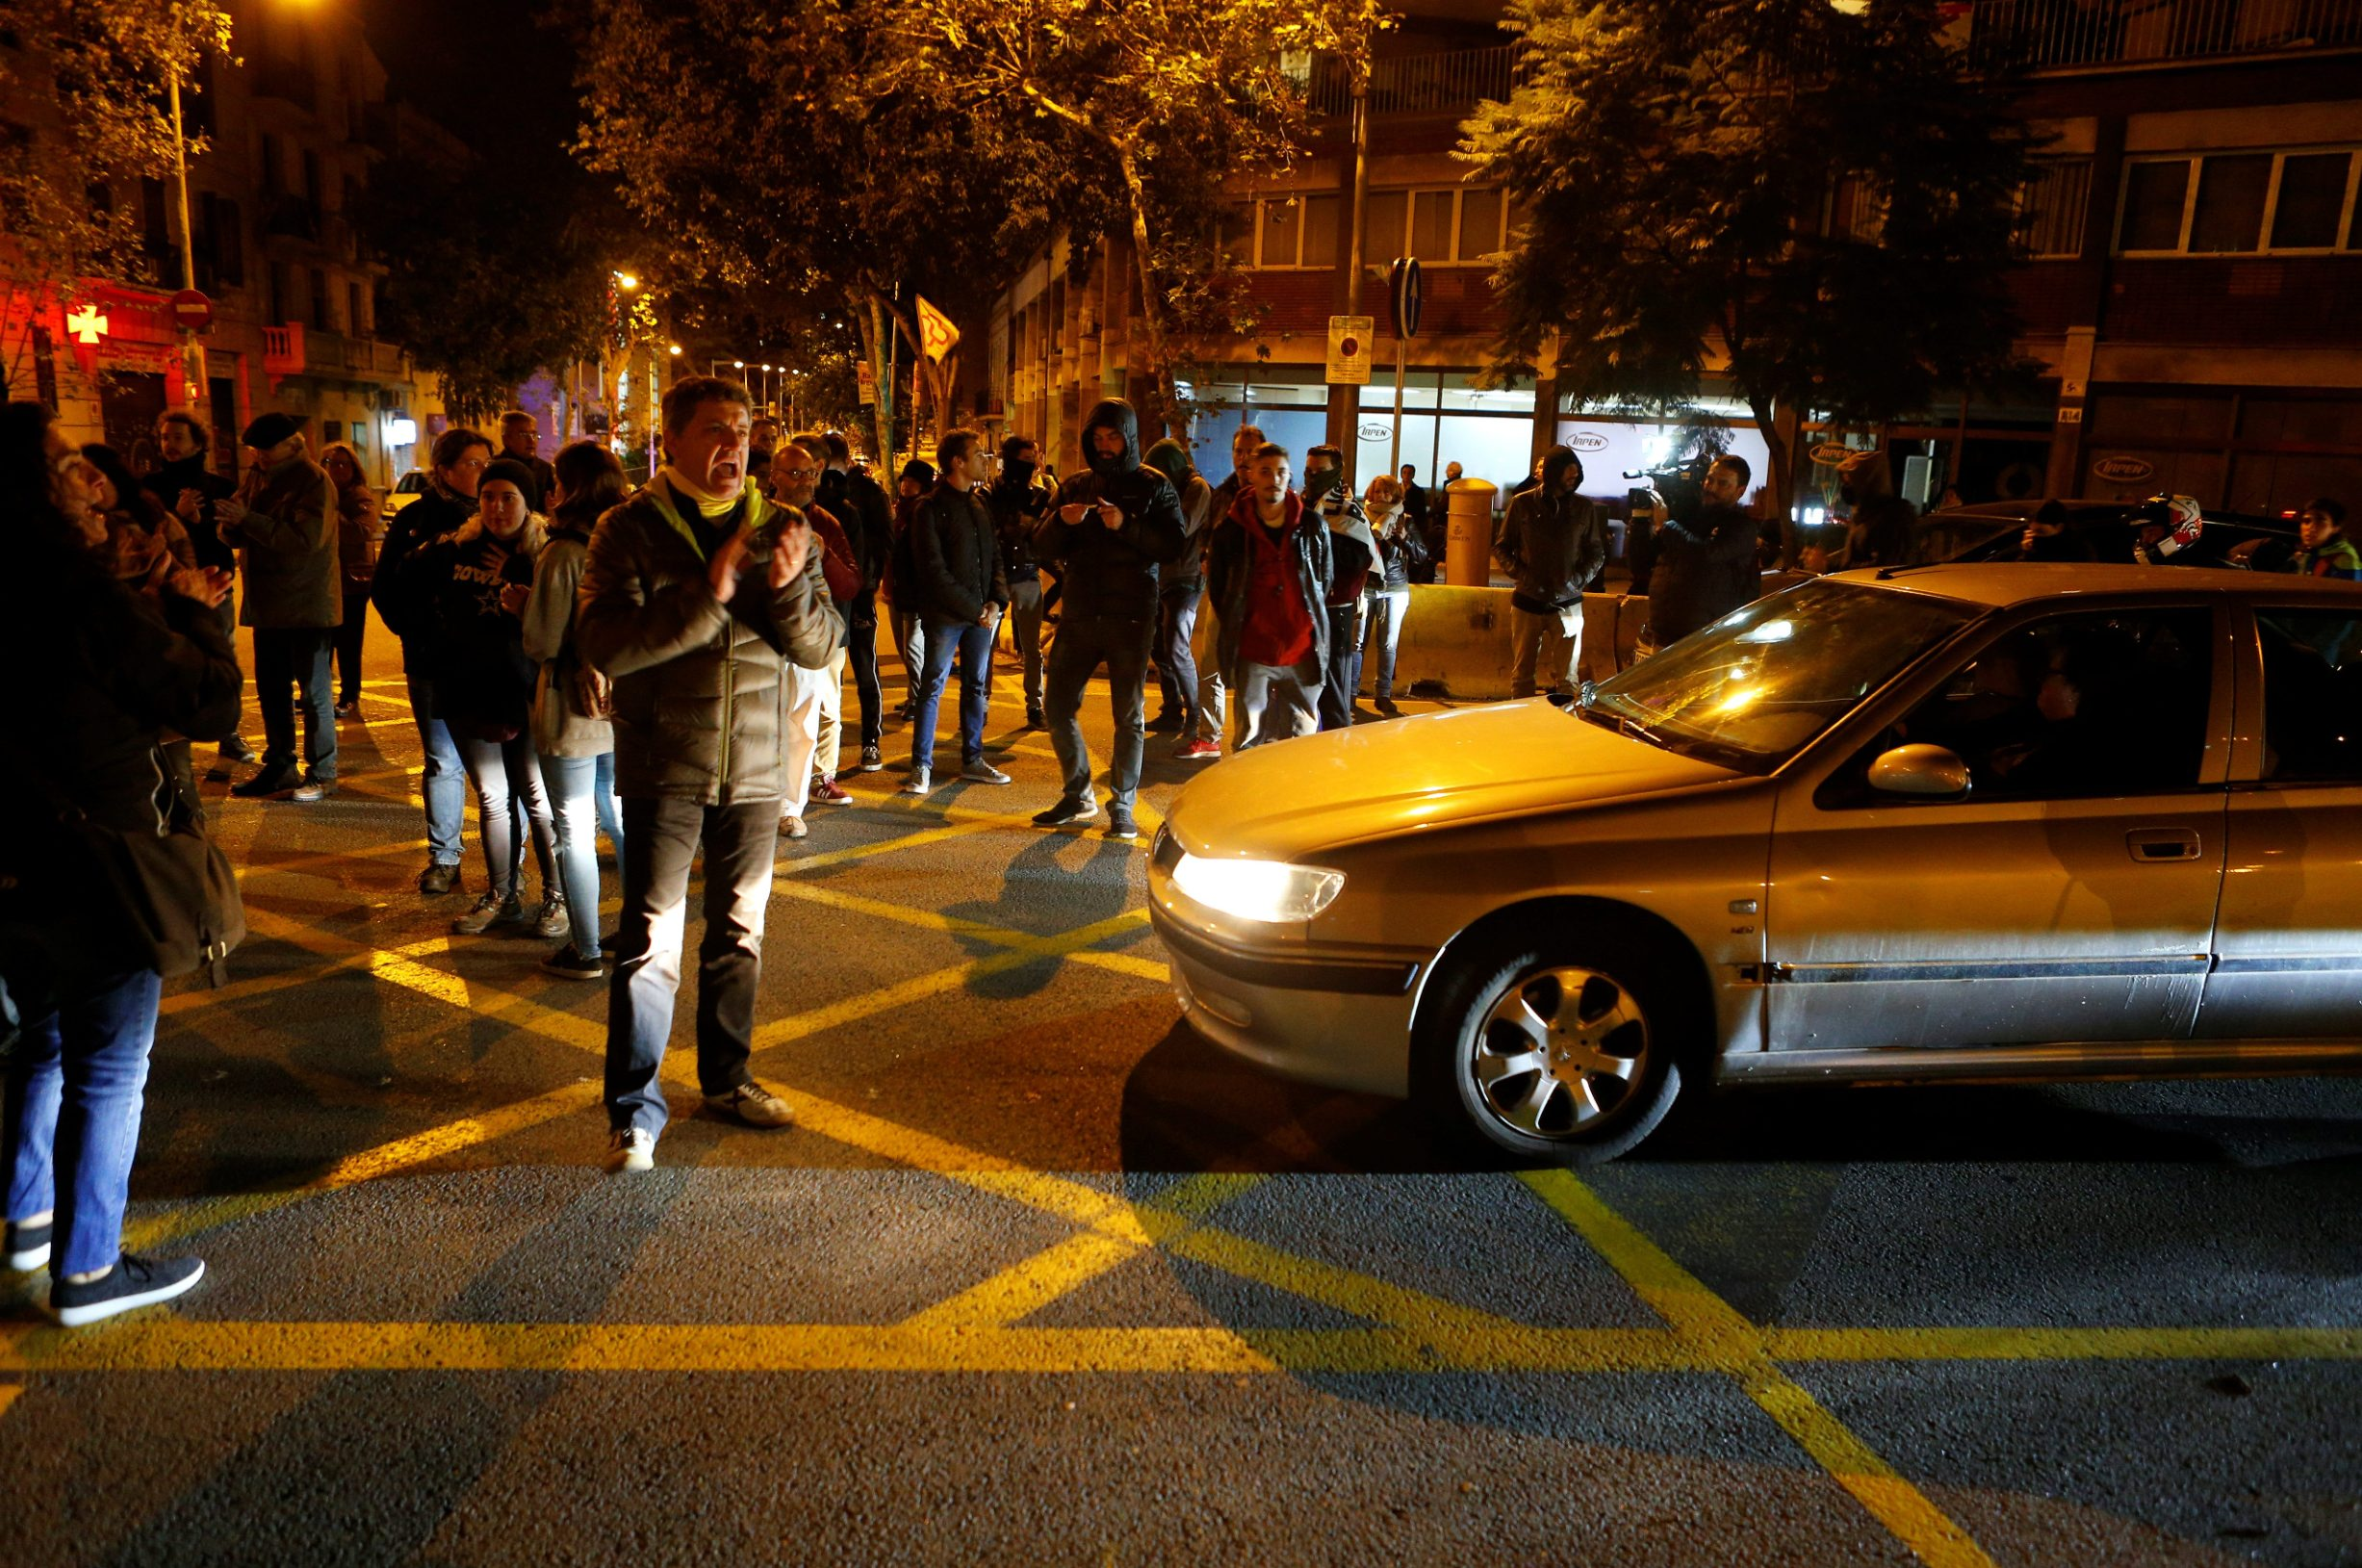 Catalan separatist protesters cut off access to main avenues in central Barcelona, November 12, 2019. REUTERS/Enrique Calvo